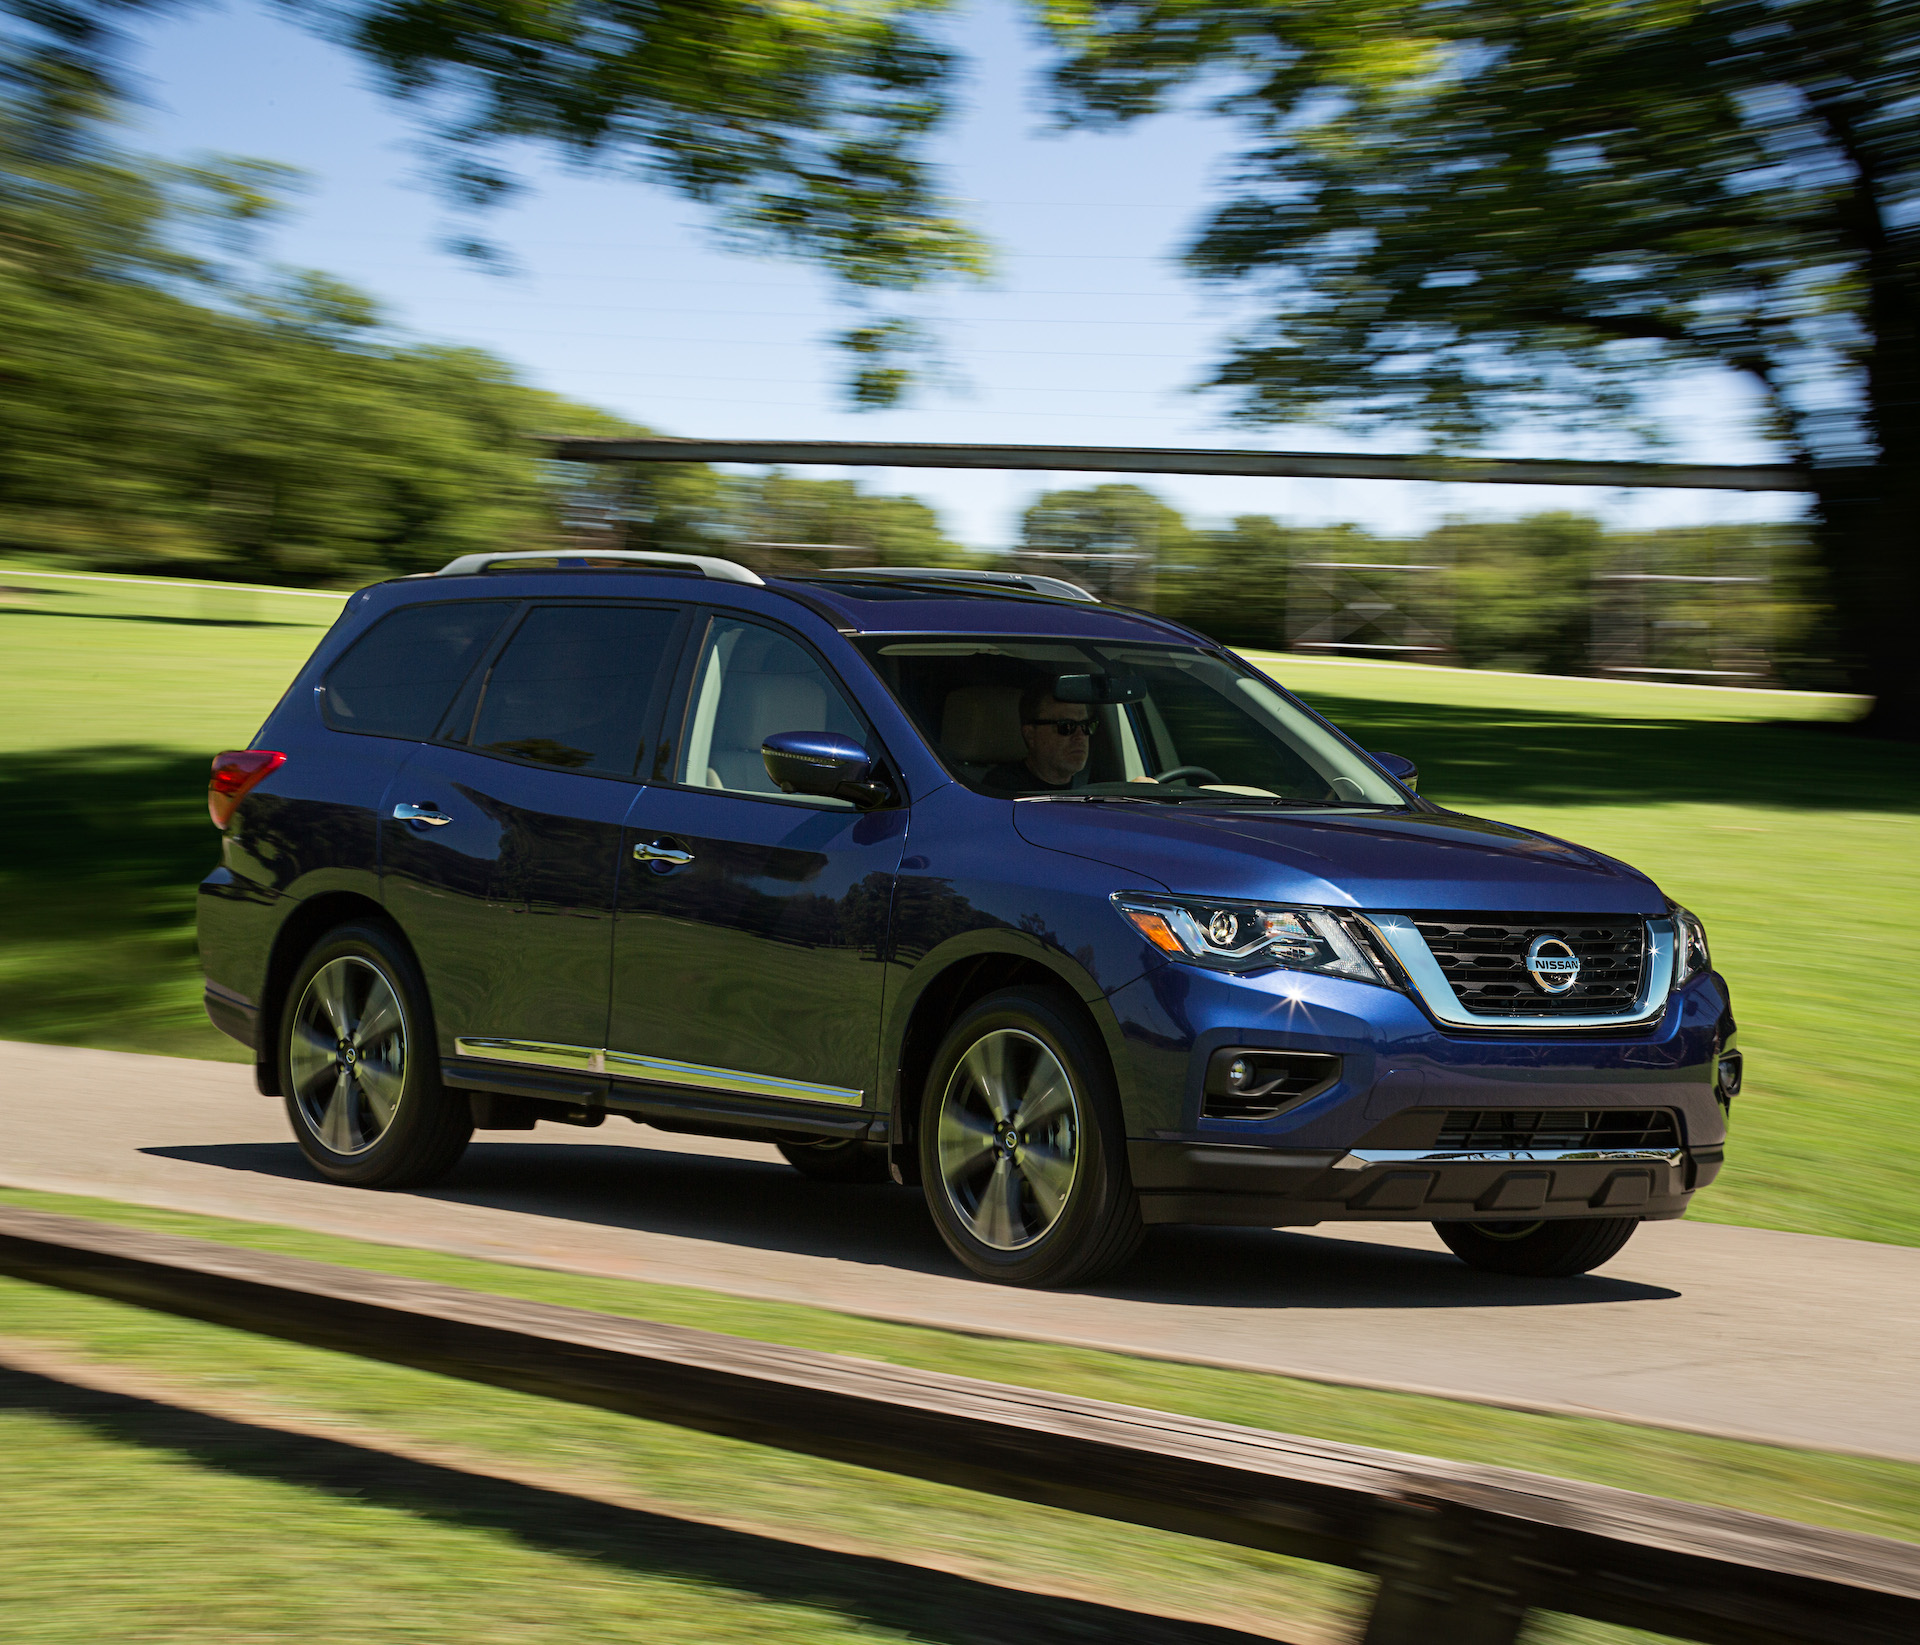 2020 Pathfinder Review.2020 Nissan Pathfinder Review Ratings Specs Prices And